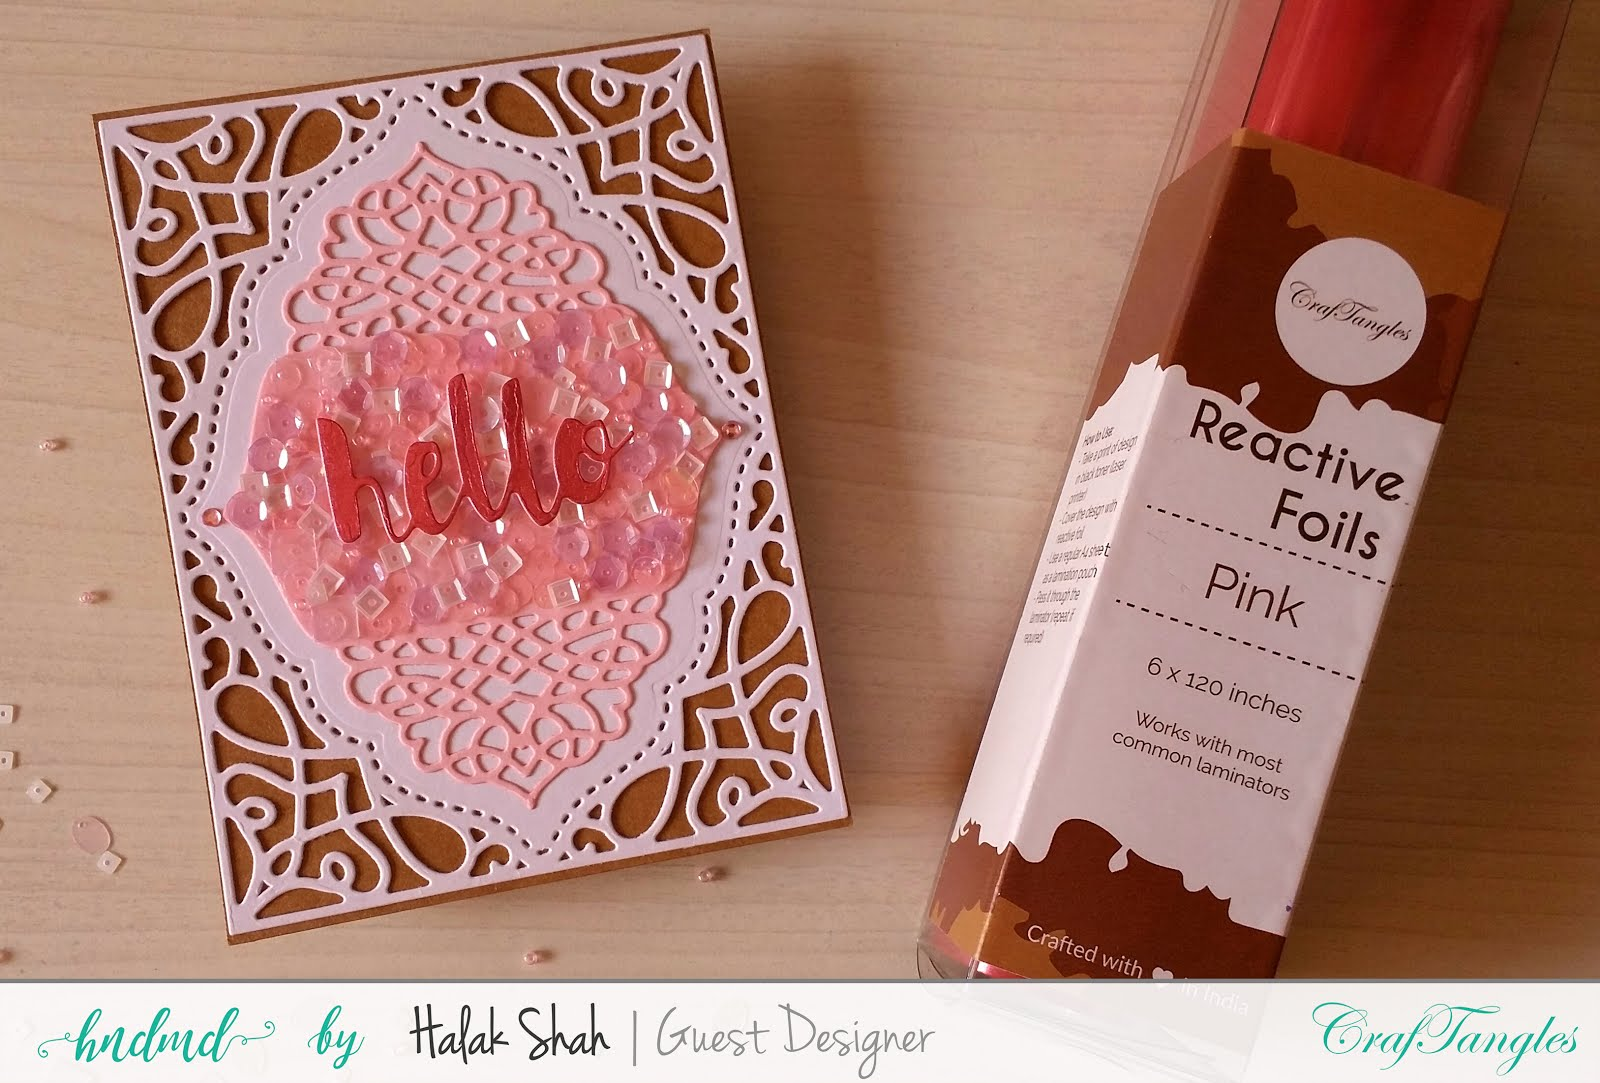 Different ways to create cards using CrafTangles Products 8